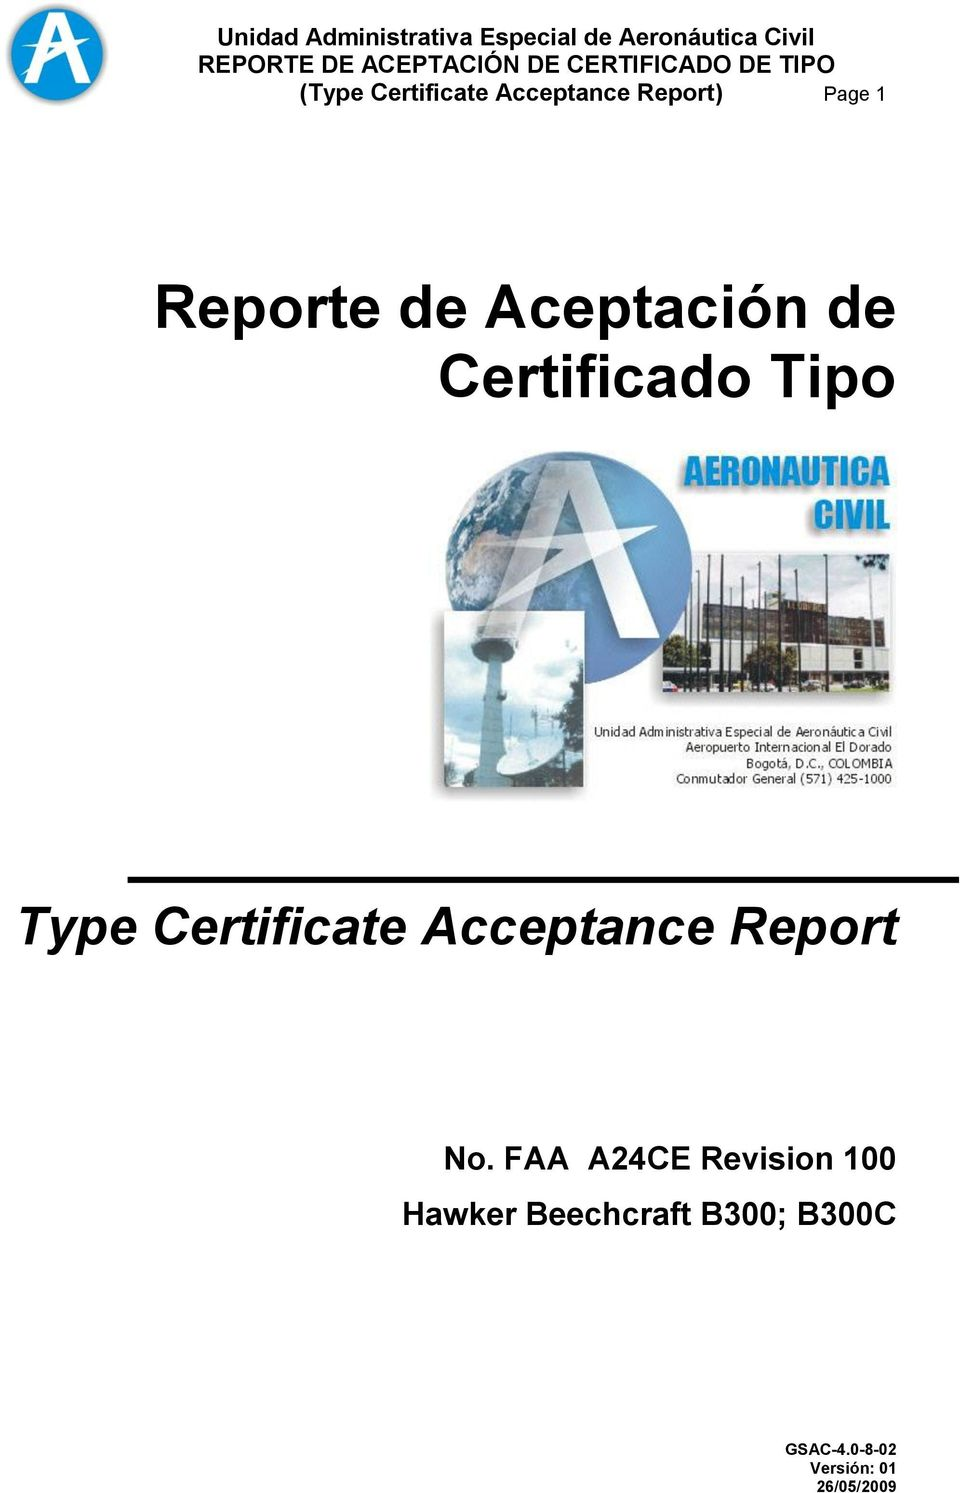 Type Certificate Acceptance Report No.